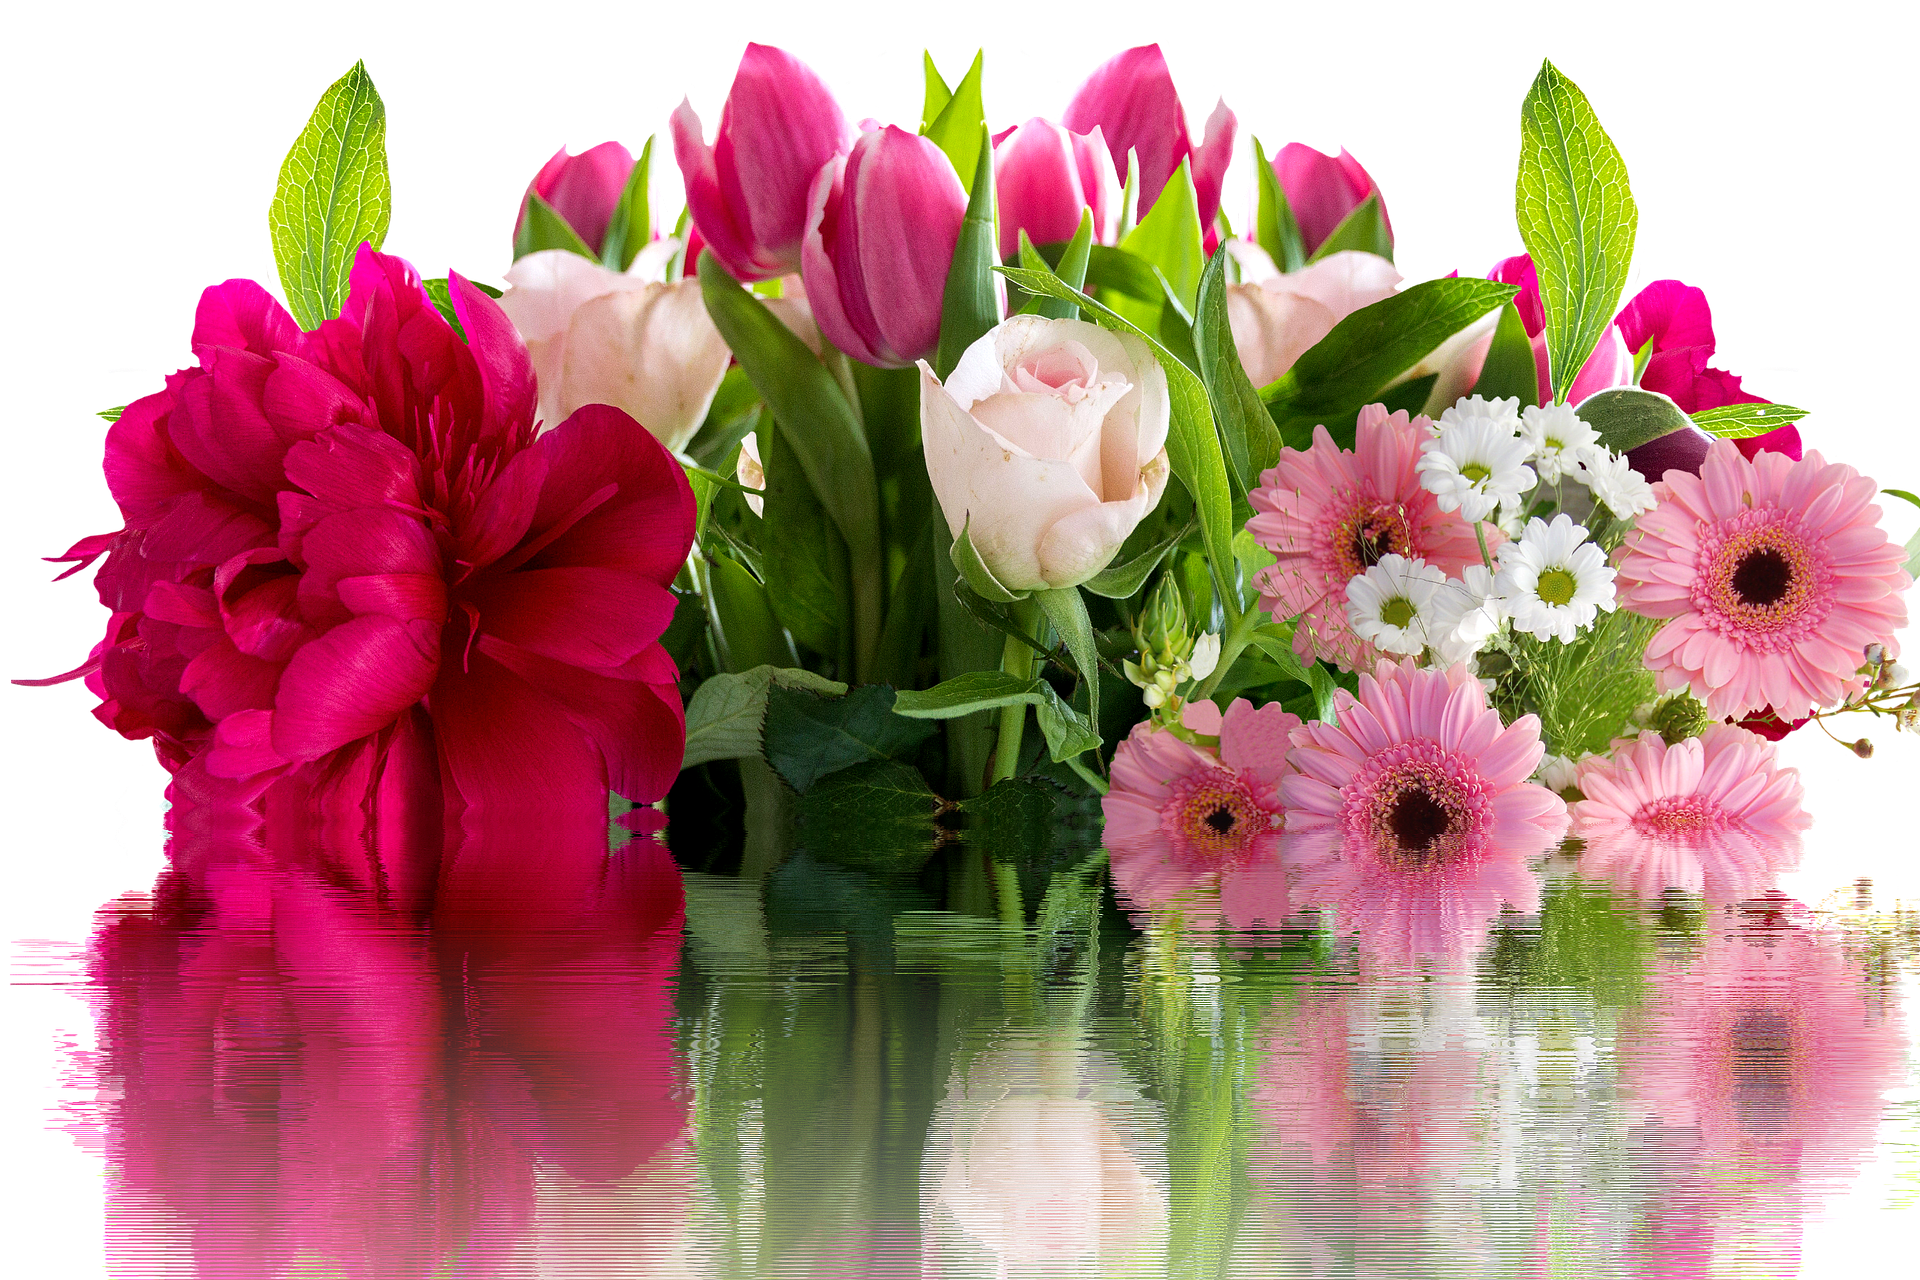 flowers with reflection